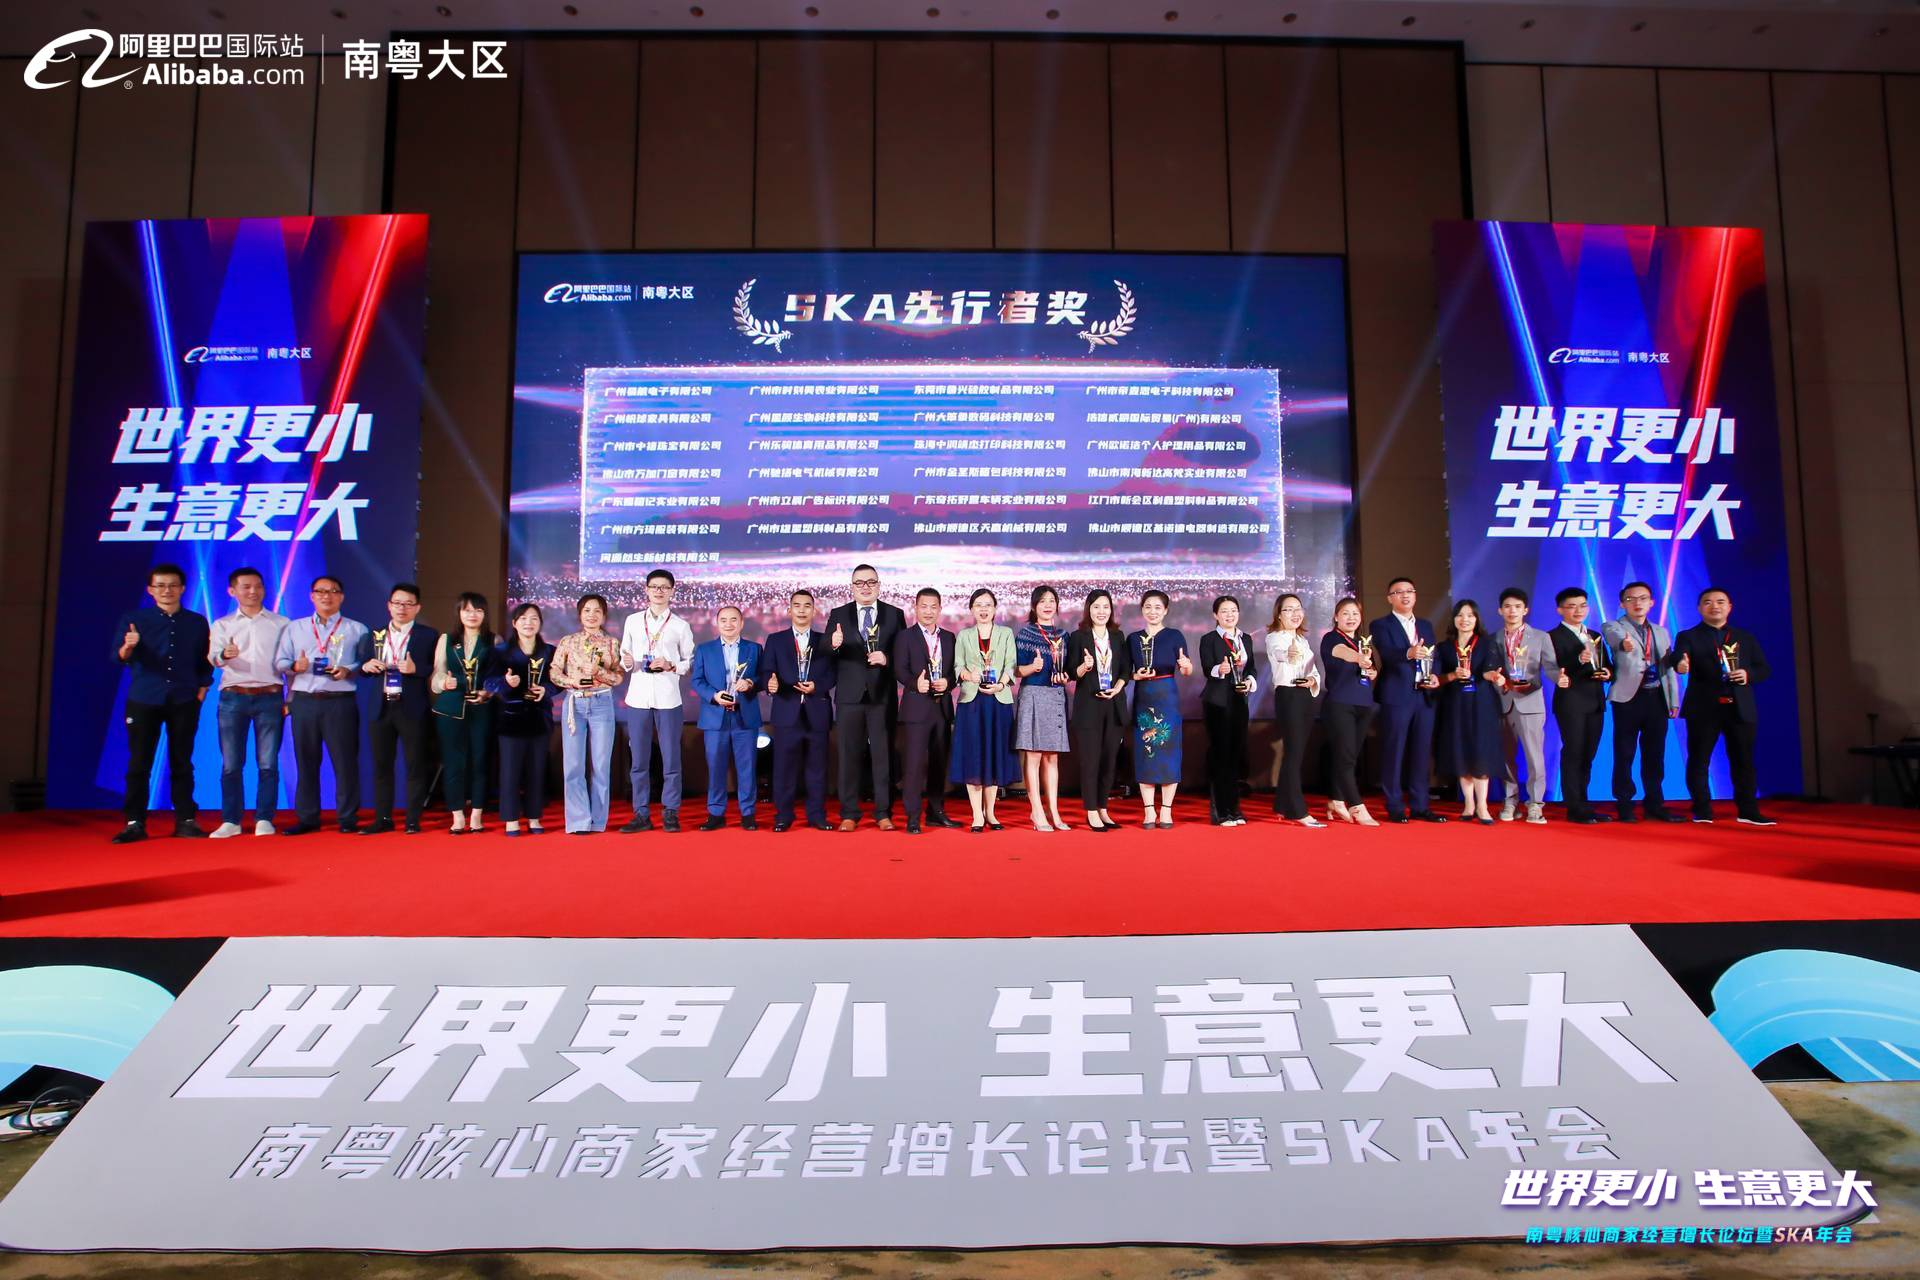 news-Two Eight-Haoxin Two Eight Ceramics was listed on the Nasdaq screen in Times Square, New York-i-1